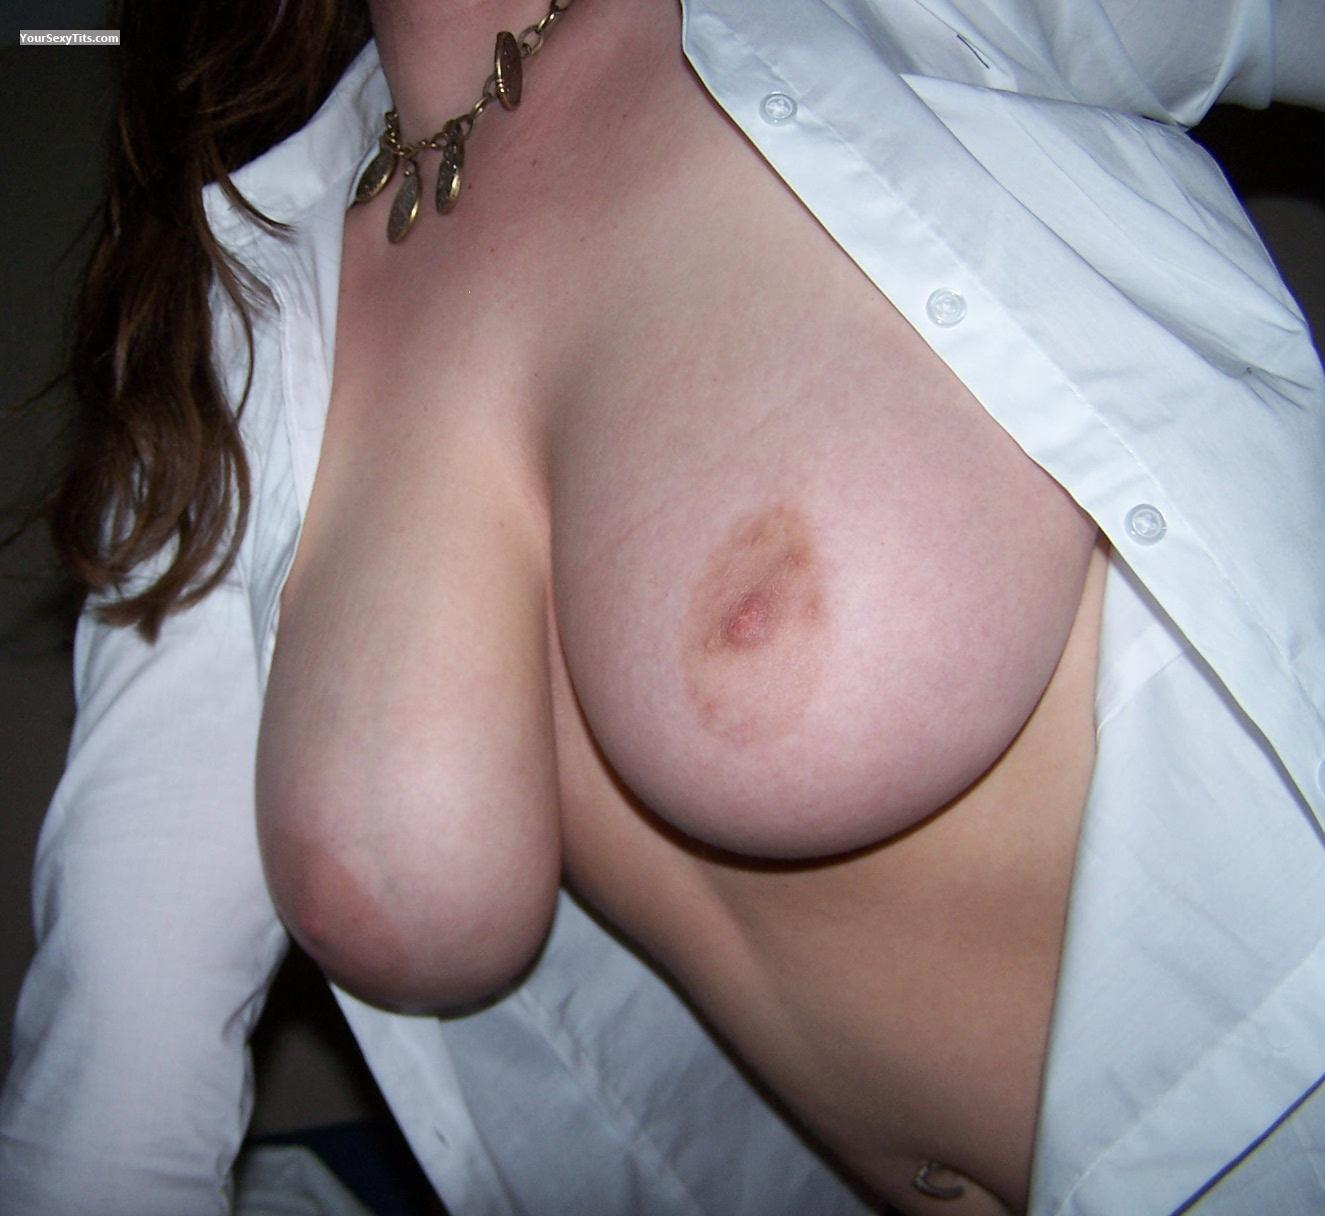 Tit Flash: My Very Big Tits (Selfie) - DoubleDee from United States